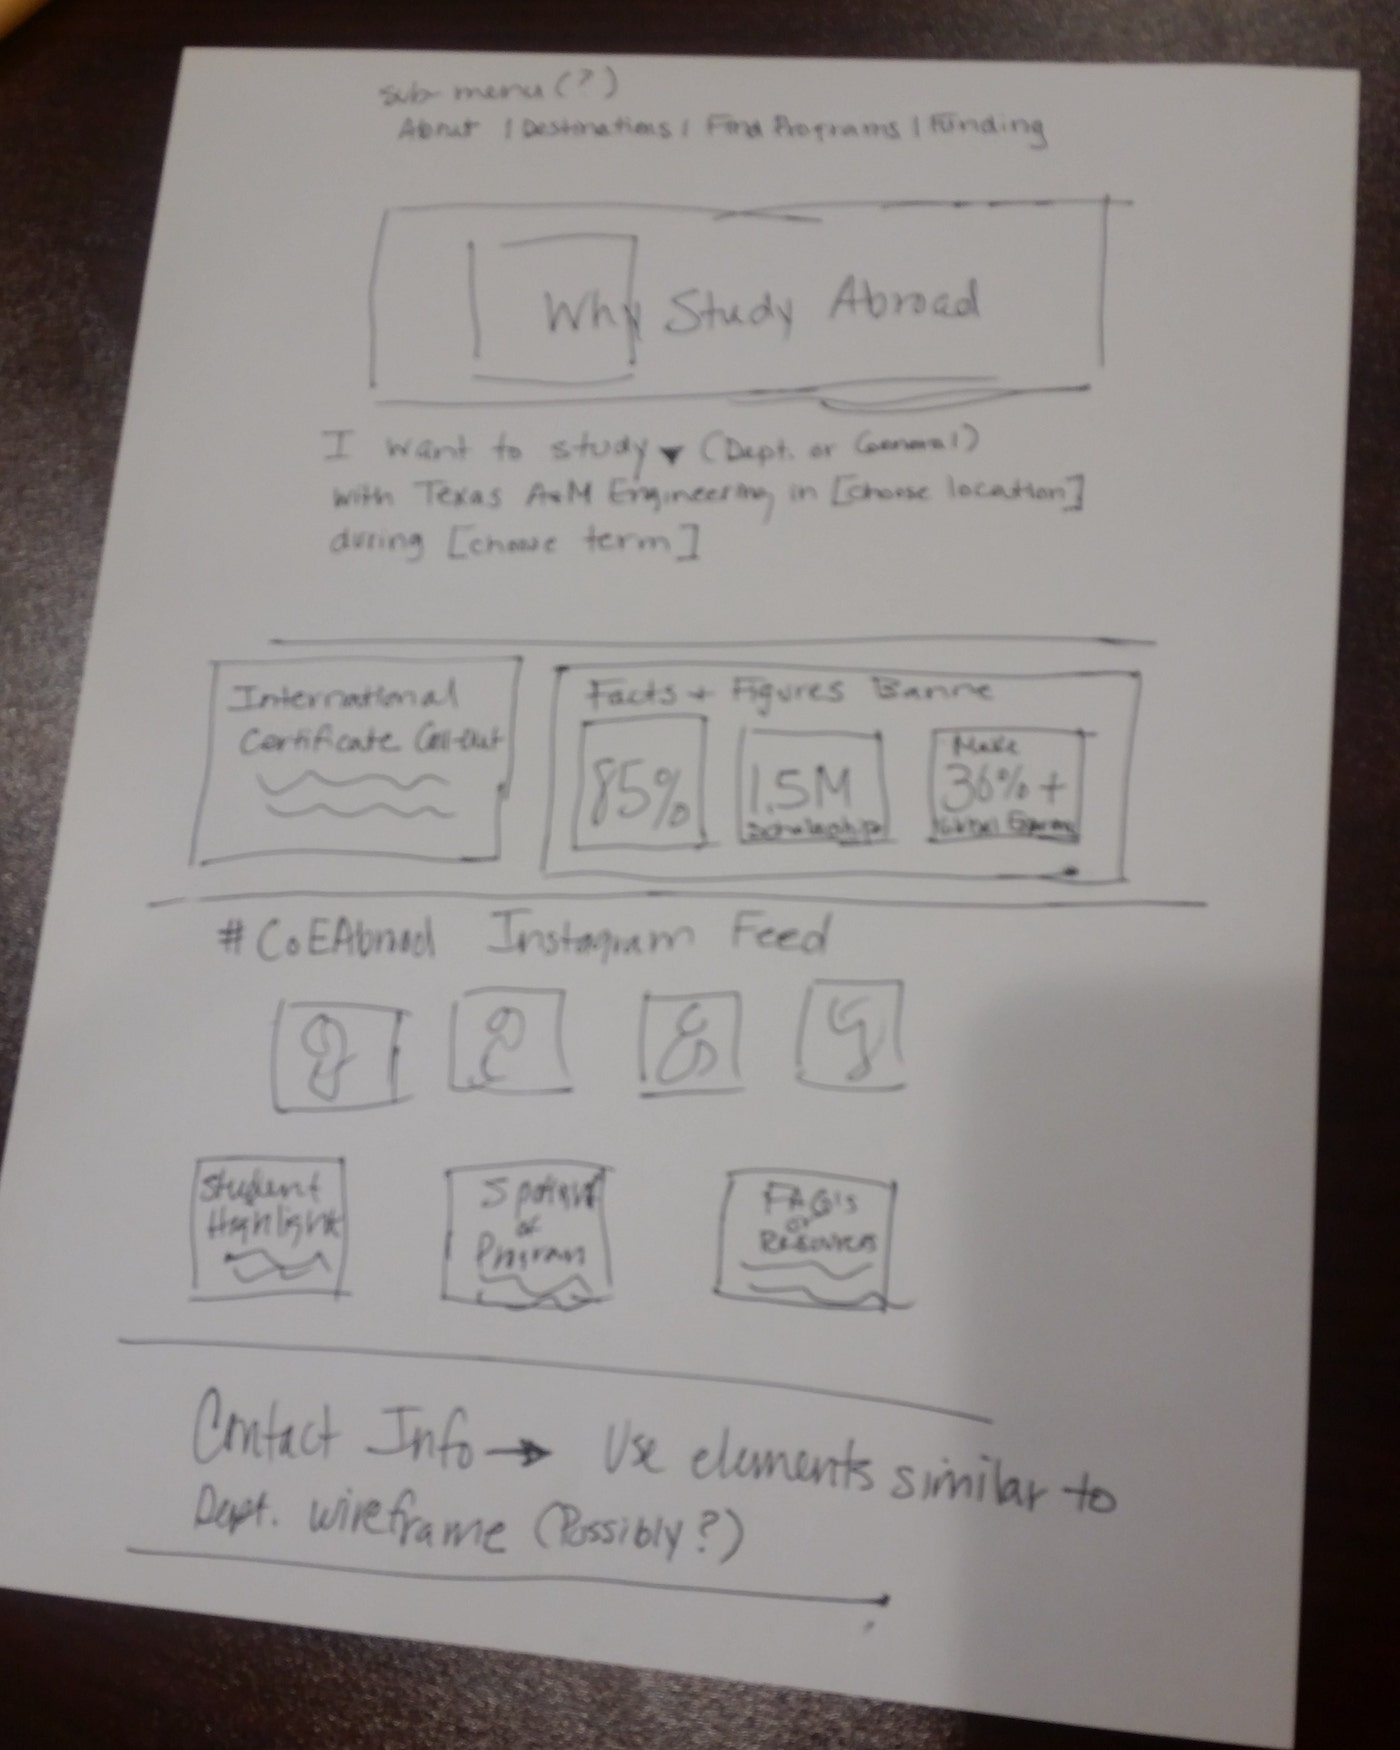 Detailed sketch of study abroad page with large hero area, program widget, facts and figures and instagram feed